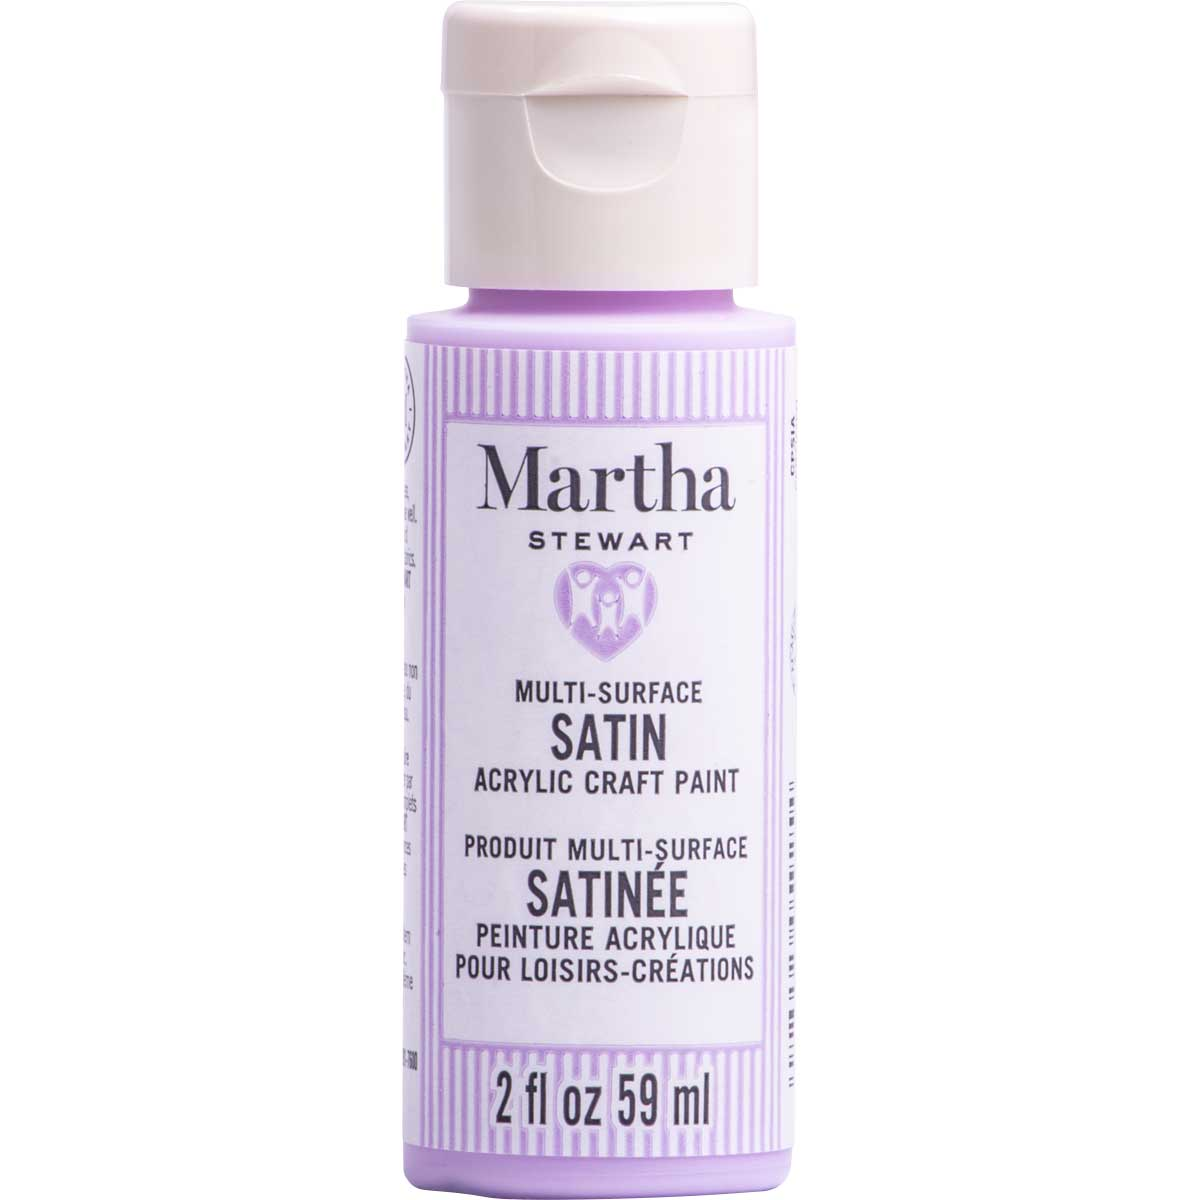 Martha Stewart ® Multi-Surface Satin Acrylic Craft Paint CPSIA - Moonstone Purple, 2 oz. - 5925